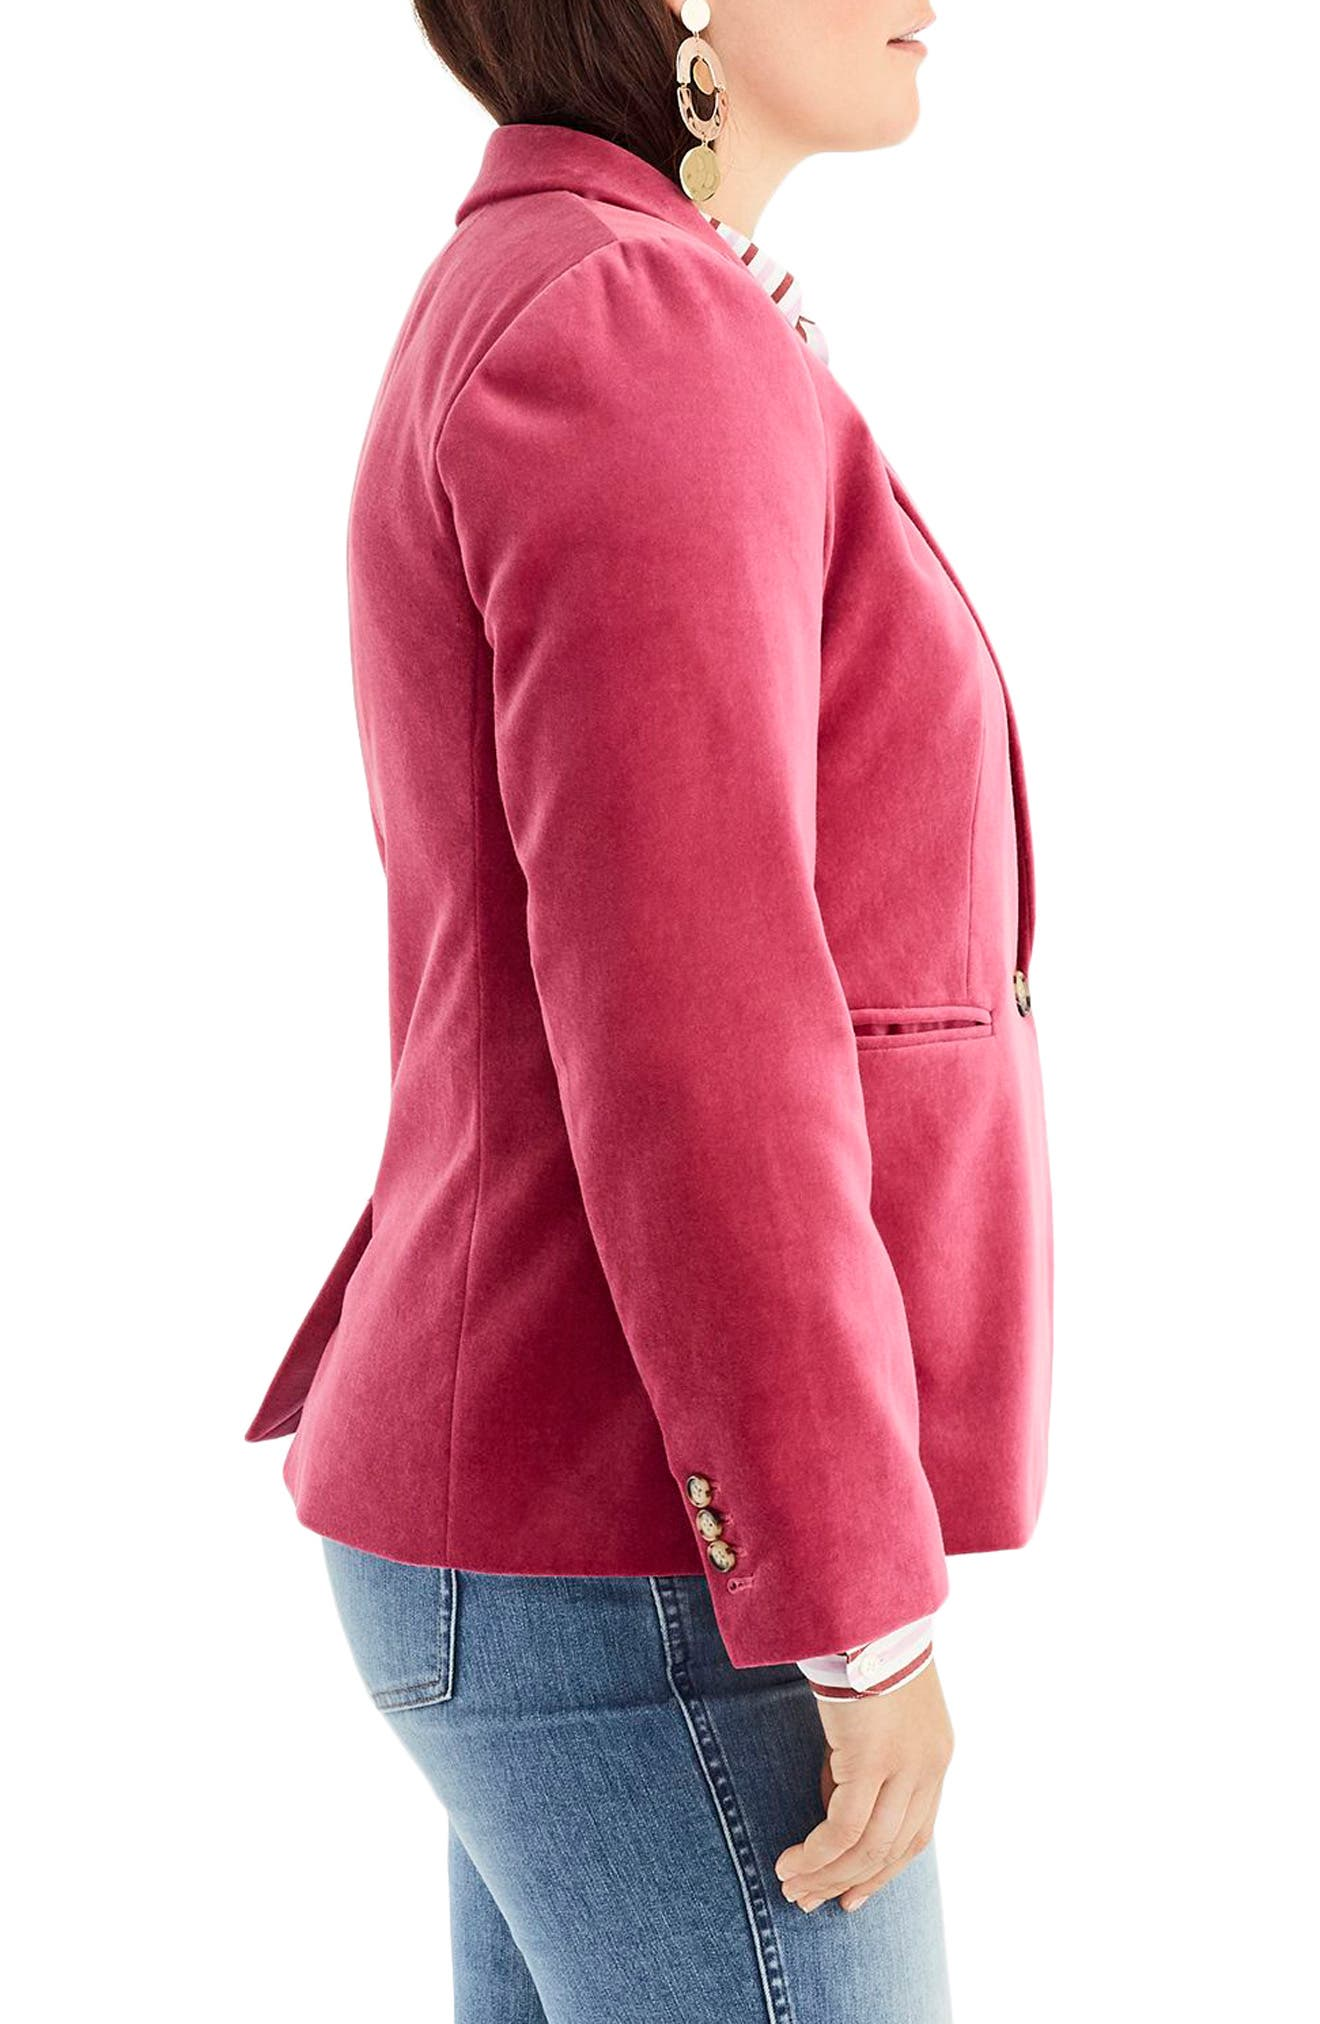 Parke Velvet Blazer,                             Alternate thumbnail 8, color,                             DRIED ROSE